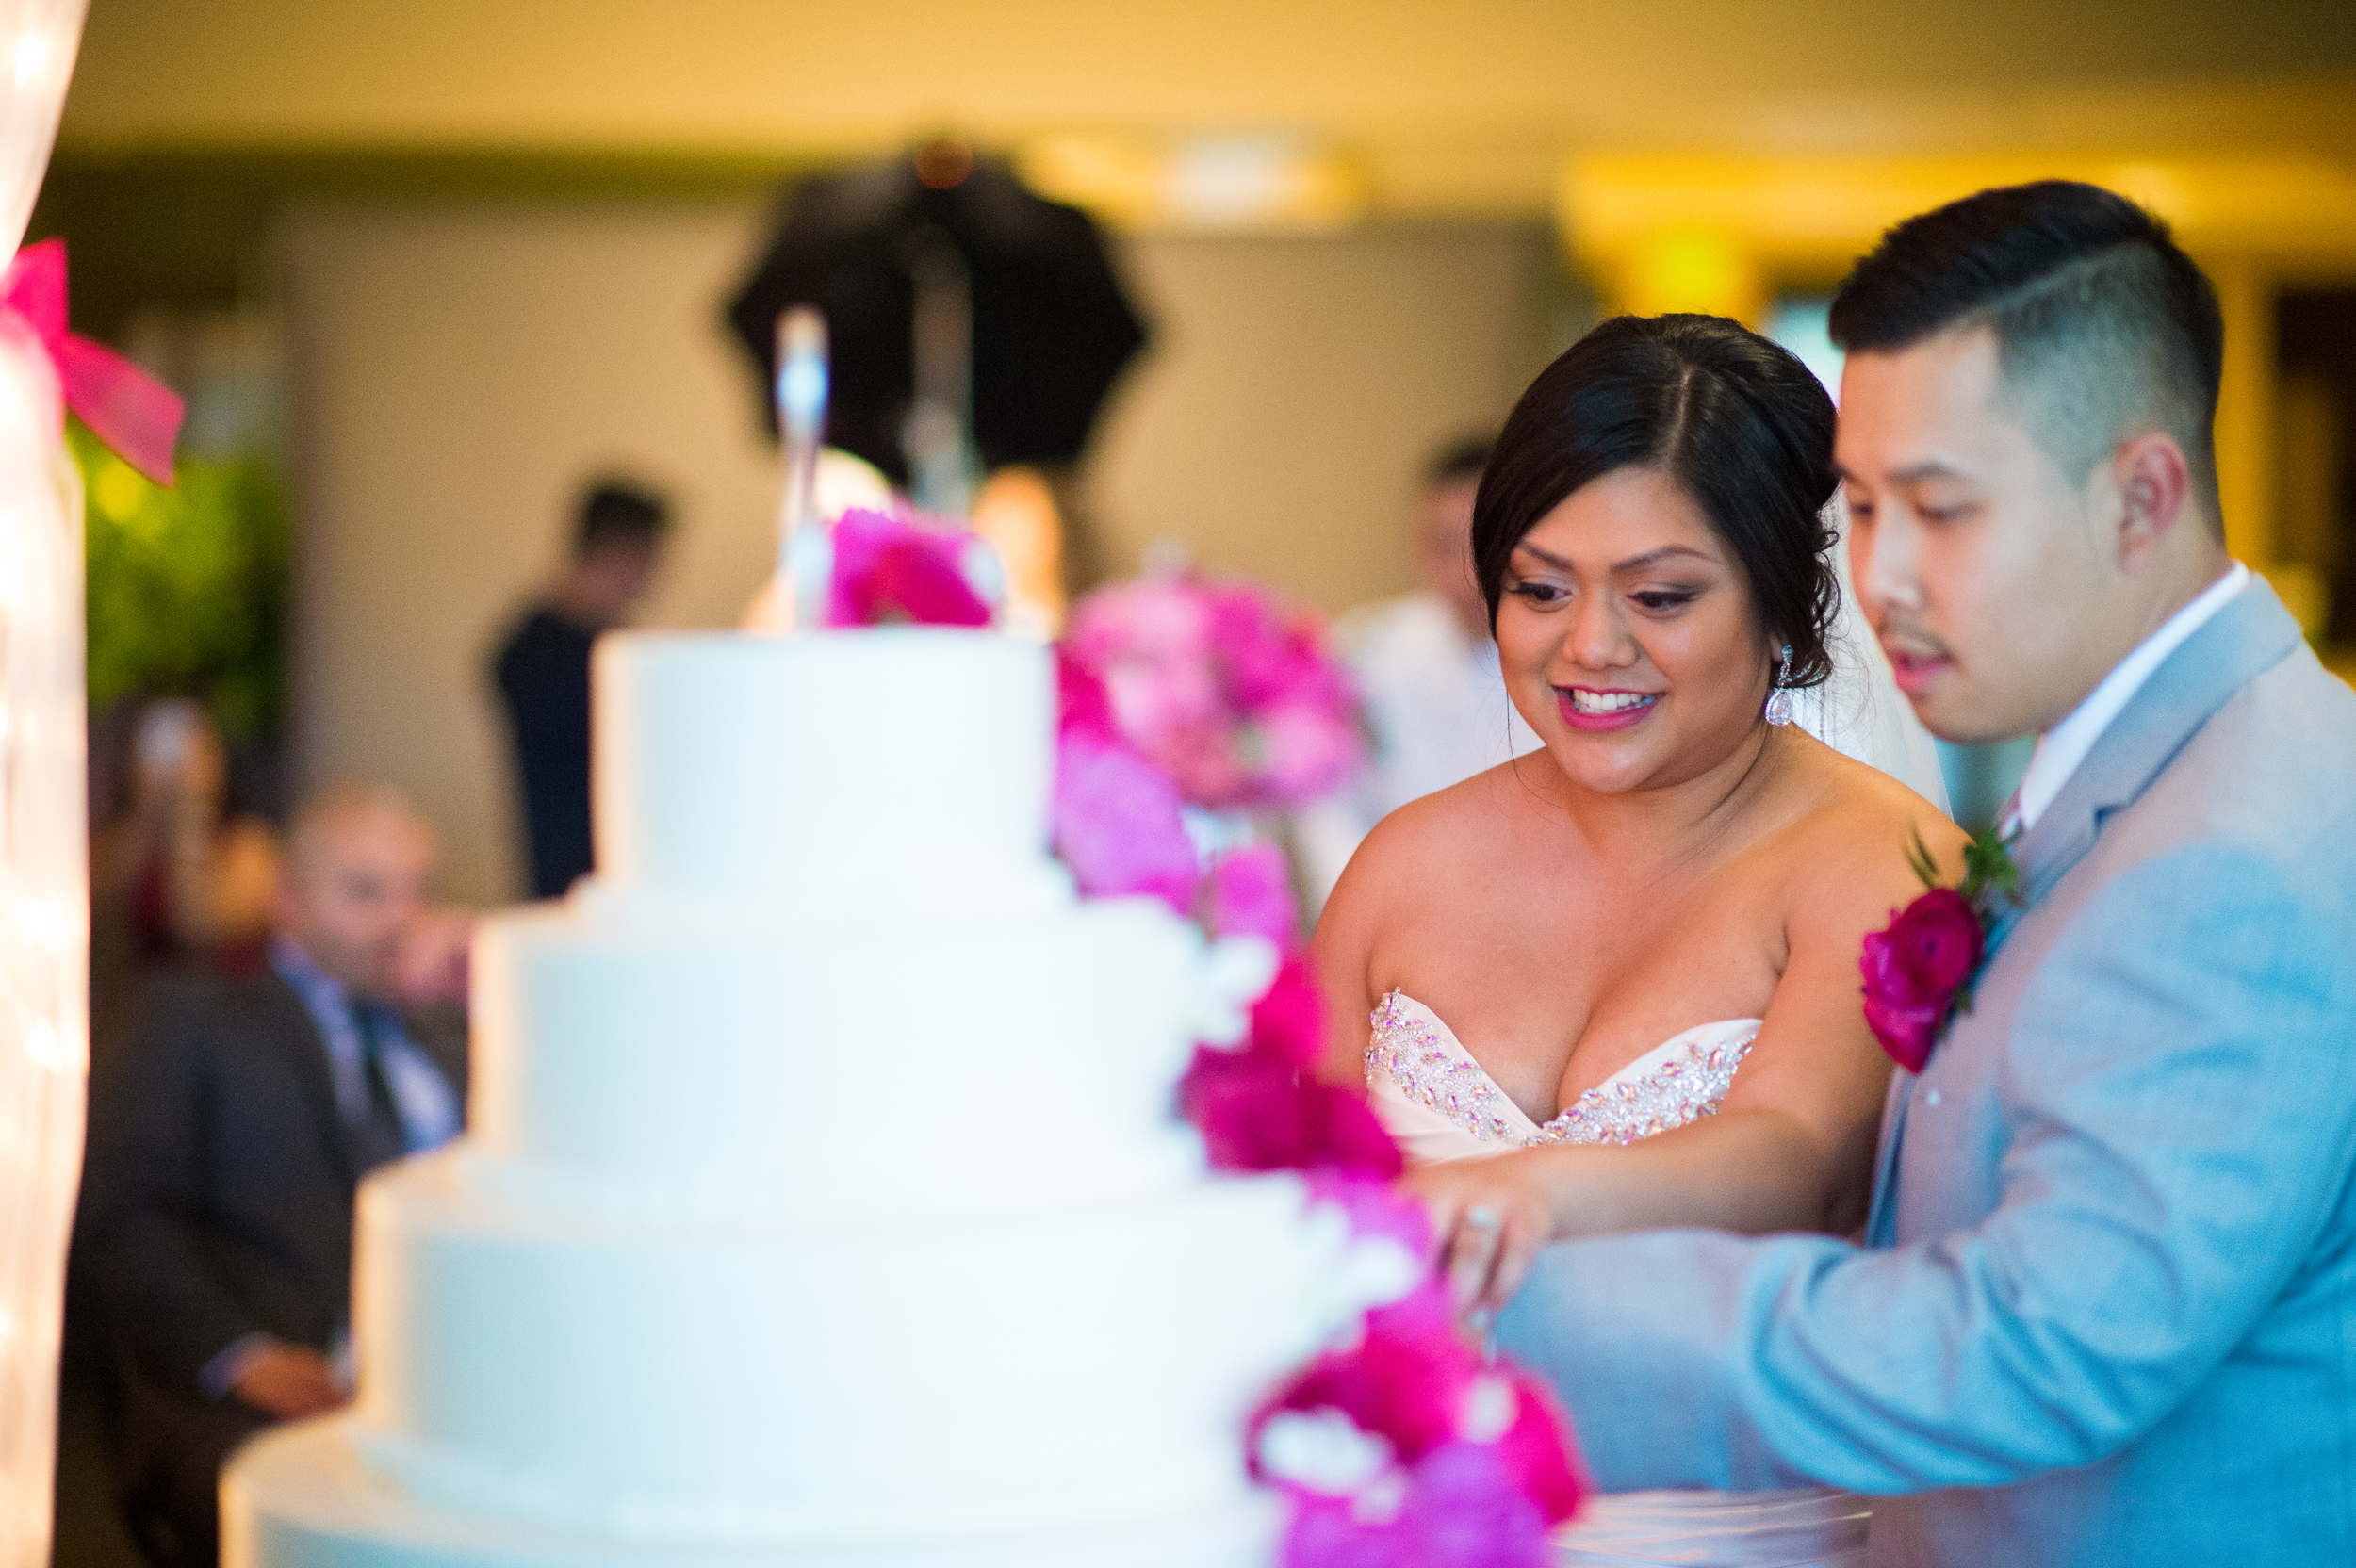 Meridian Valley Country Club Wedding | Cake Cutting | C2 Photography | Seattle Wedding Planner | New Creations Weddings | Filipino Wedding Planner